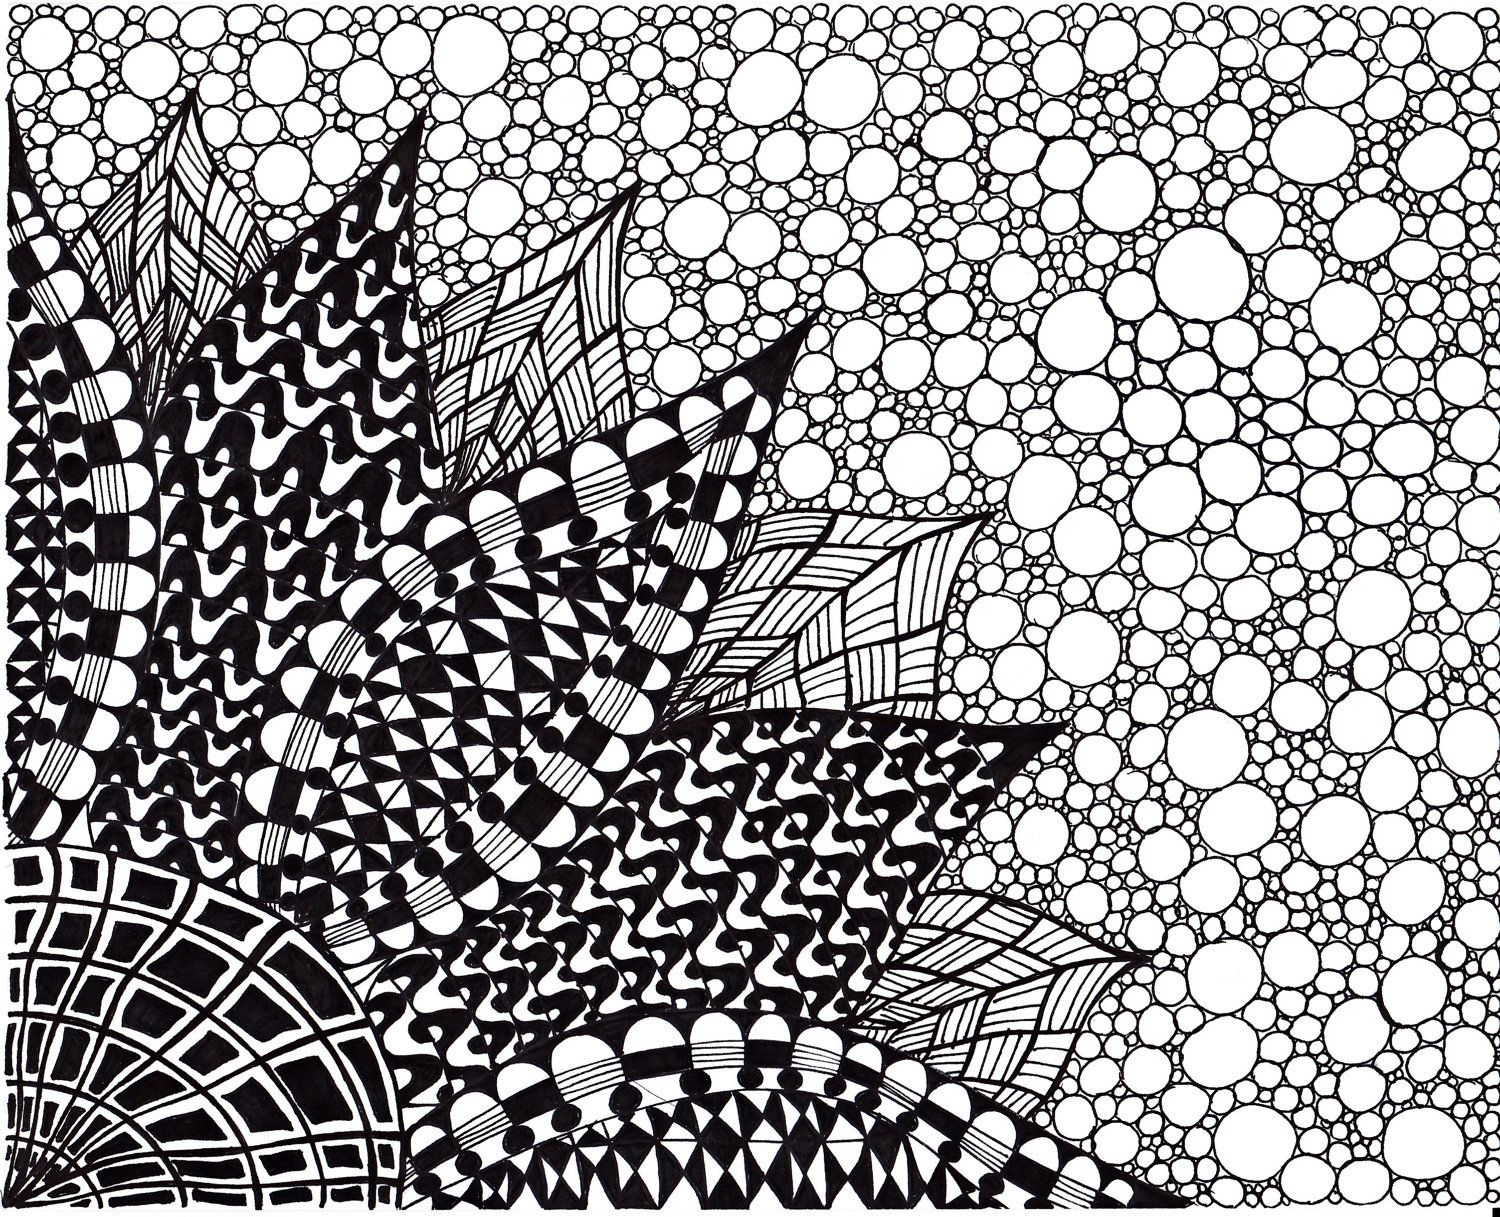 Zentangle Inspired Flower Art Print Ink Drawing Zendoodle Printable Black And White 600 Via Etsy